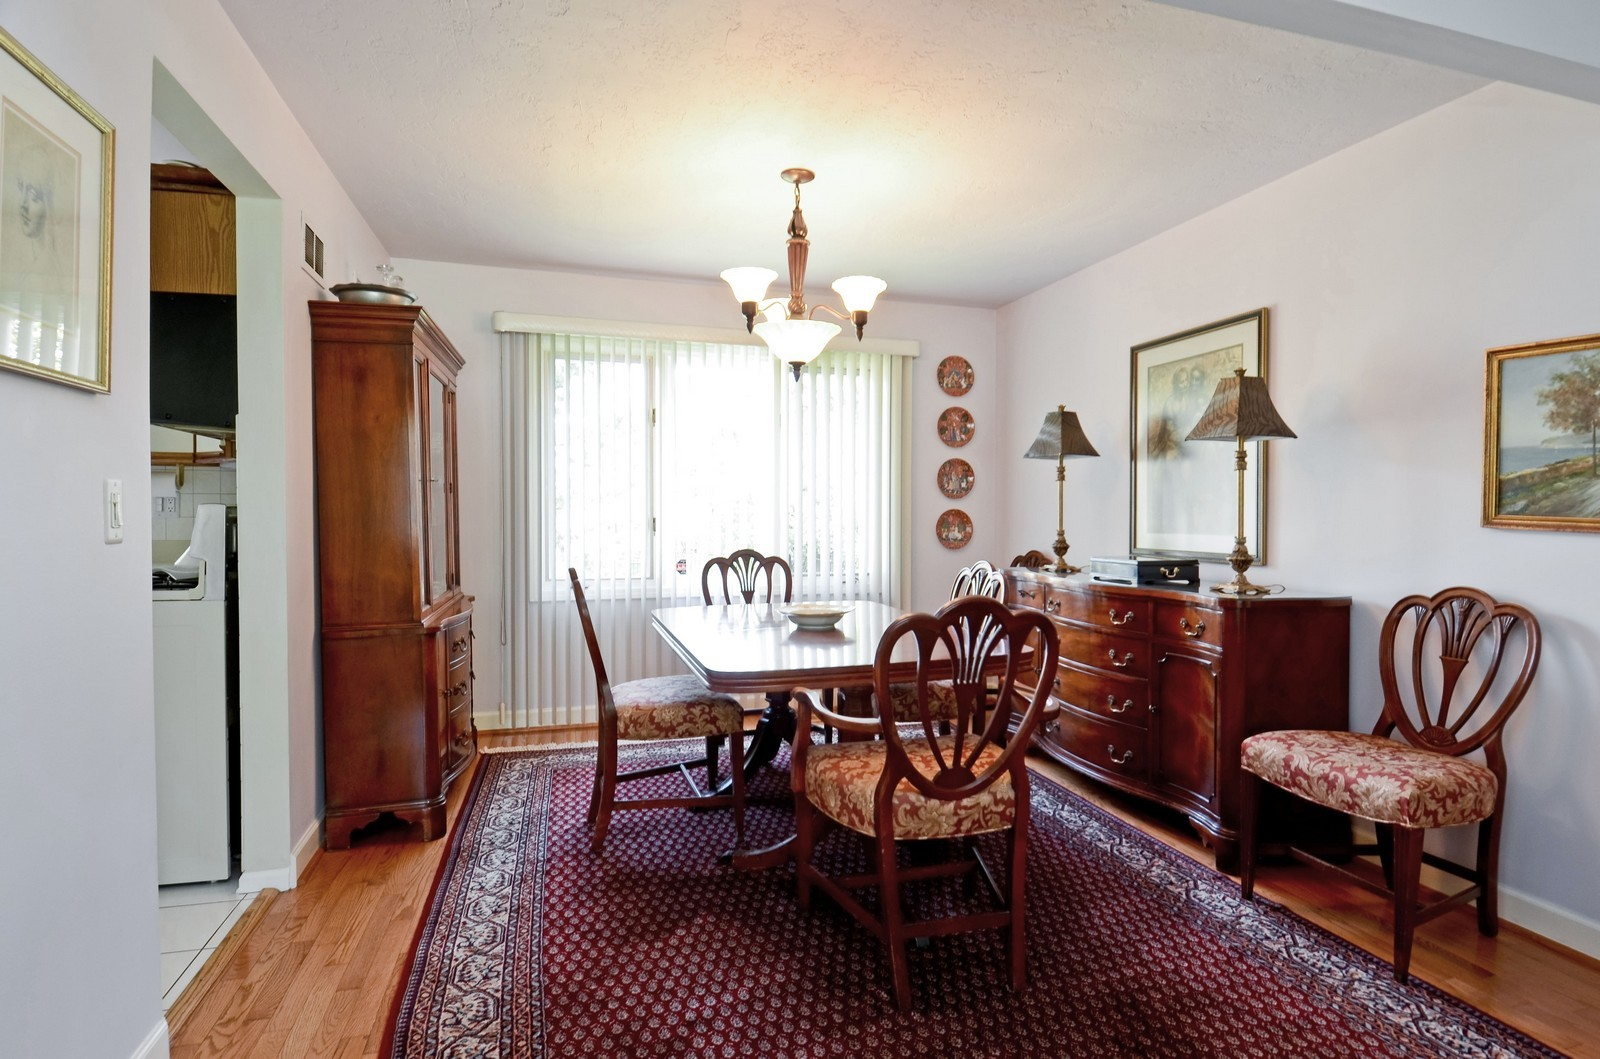 Real Estate Photography - 367 S Edgewood, Wood Dale, IL, 60191 - Dining Room